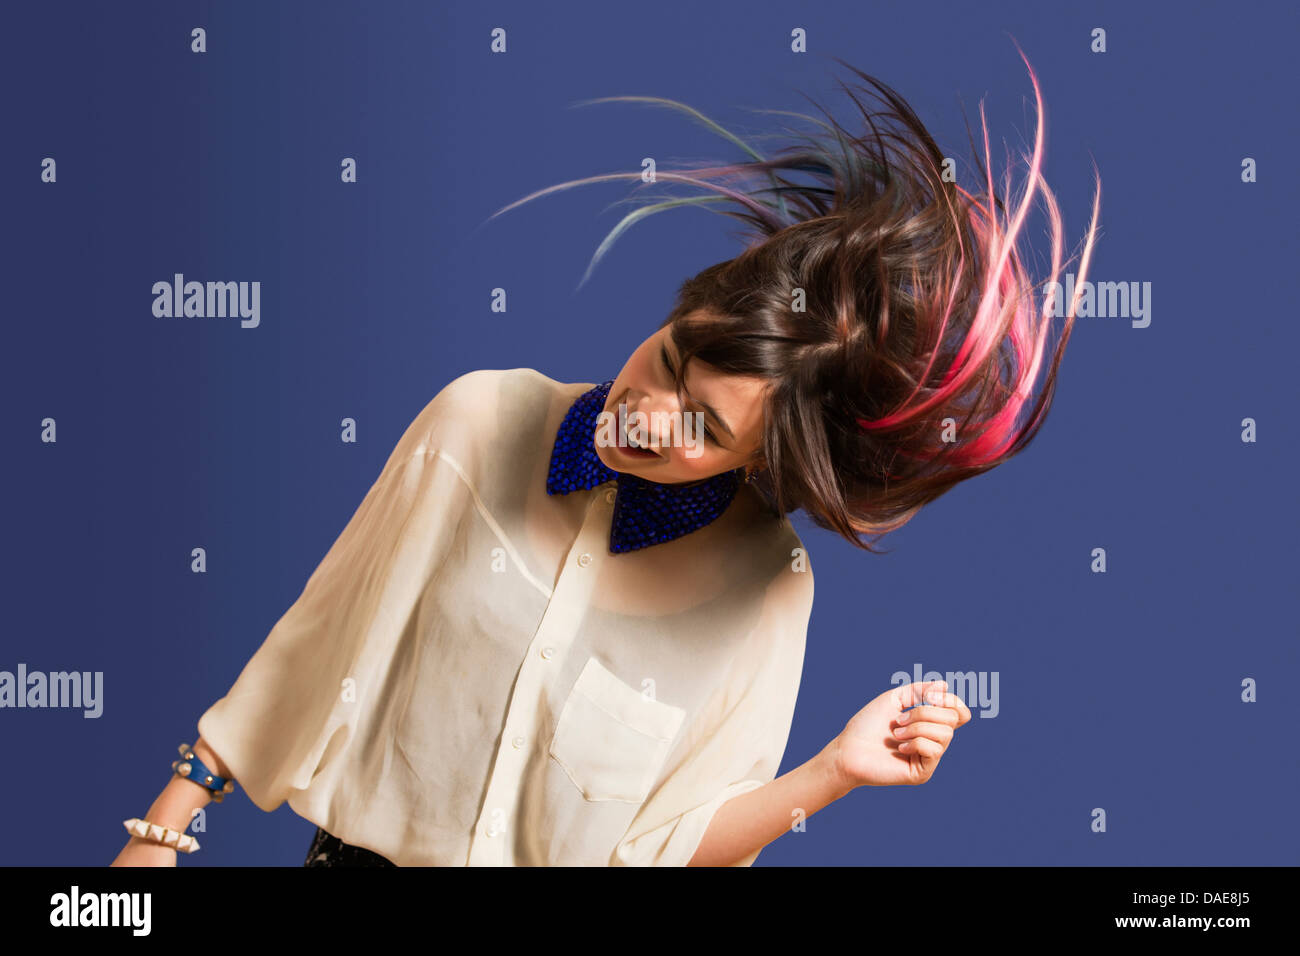 Portrait of young woman with dyed hair dancing - Stock Image